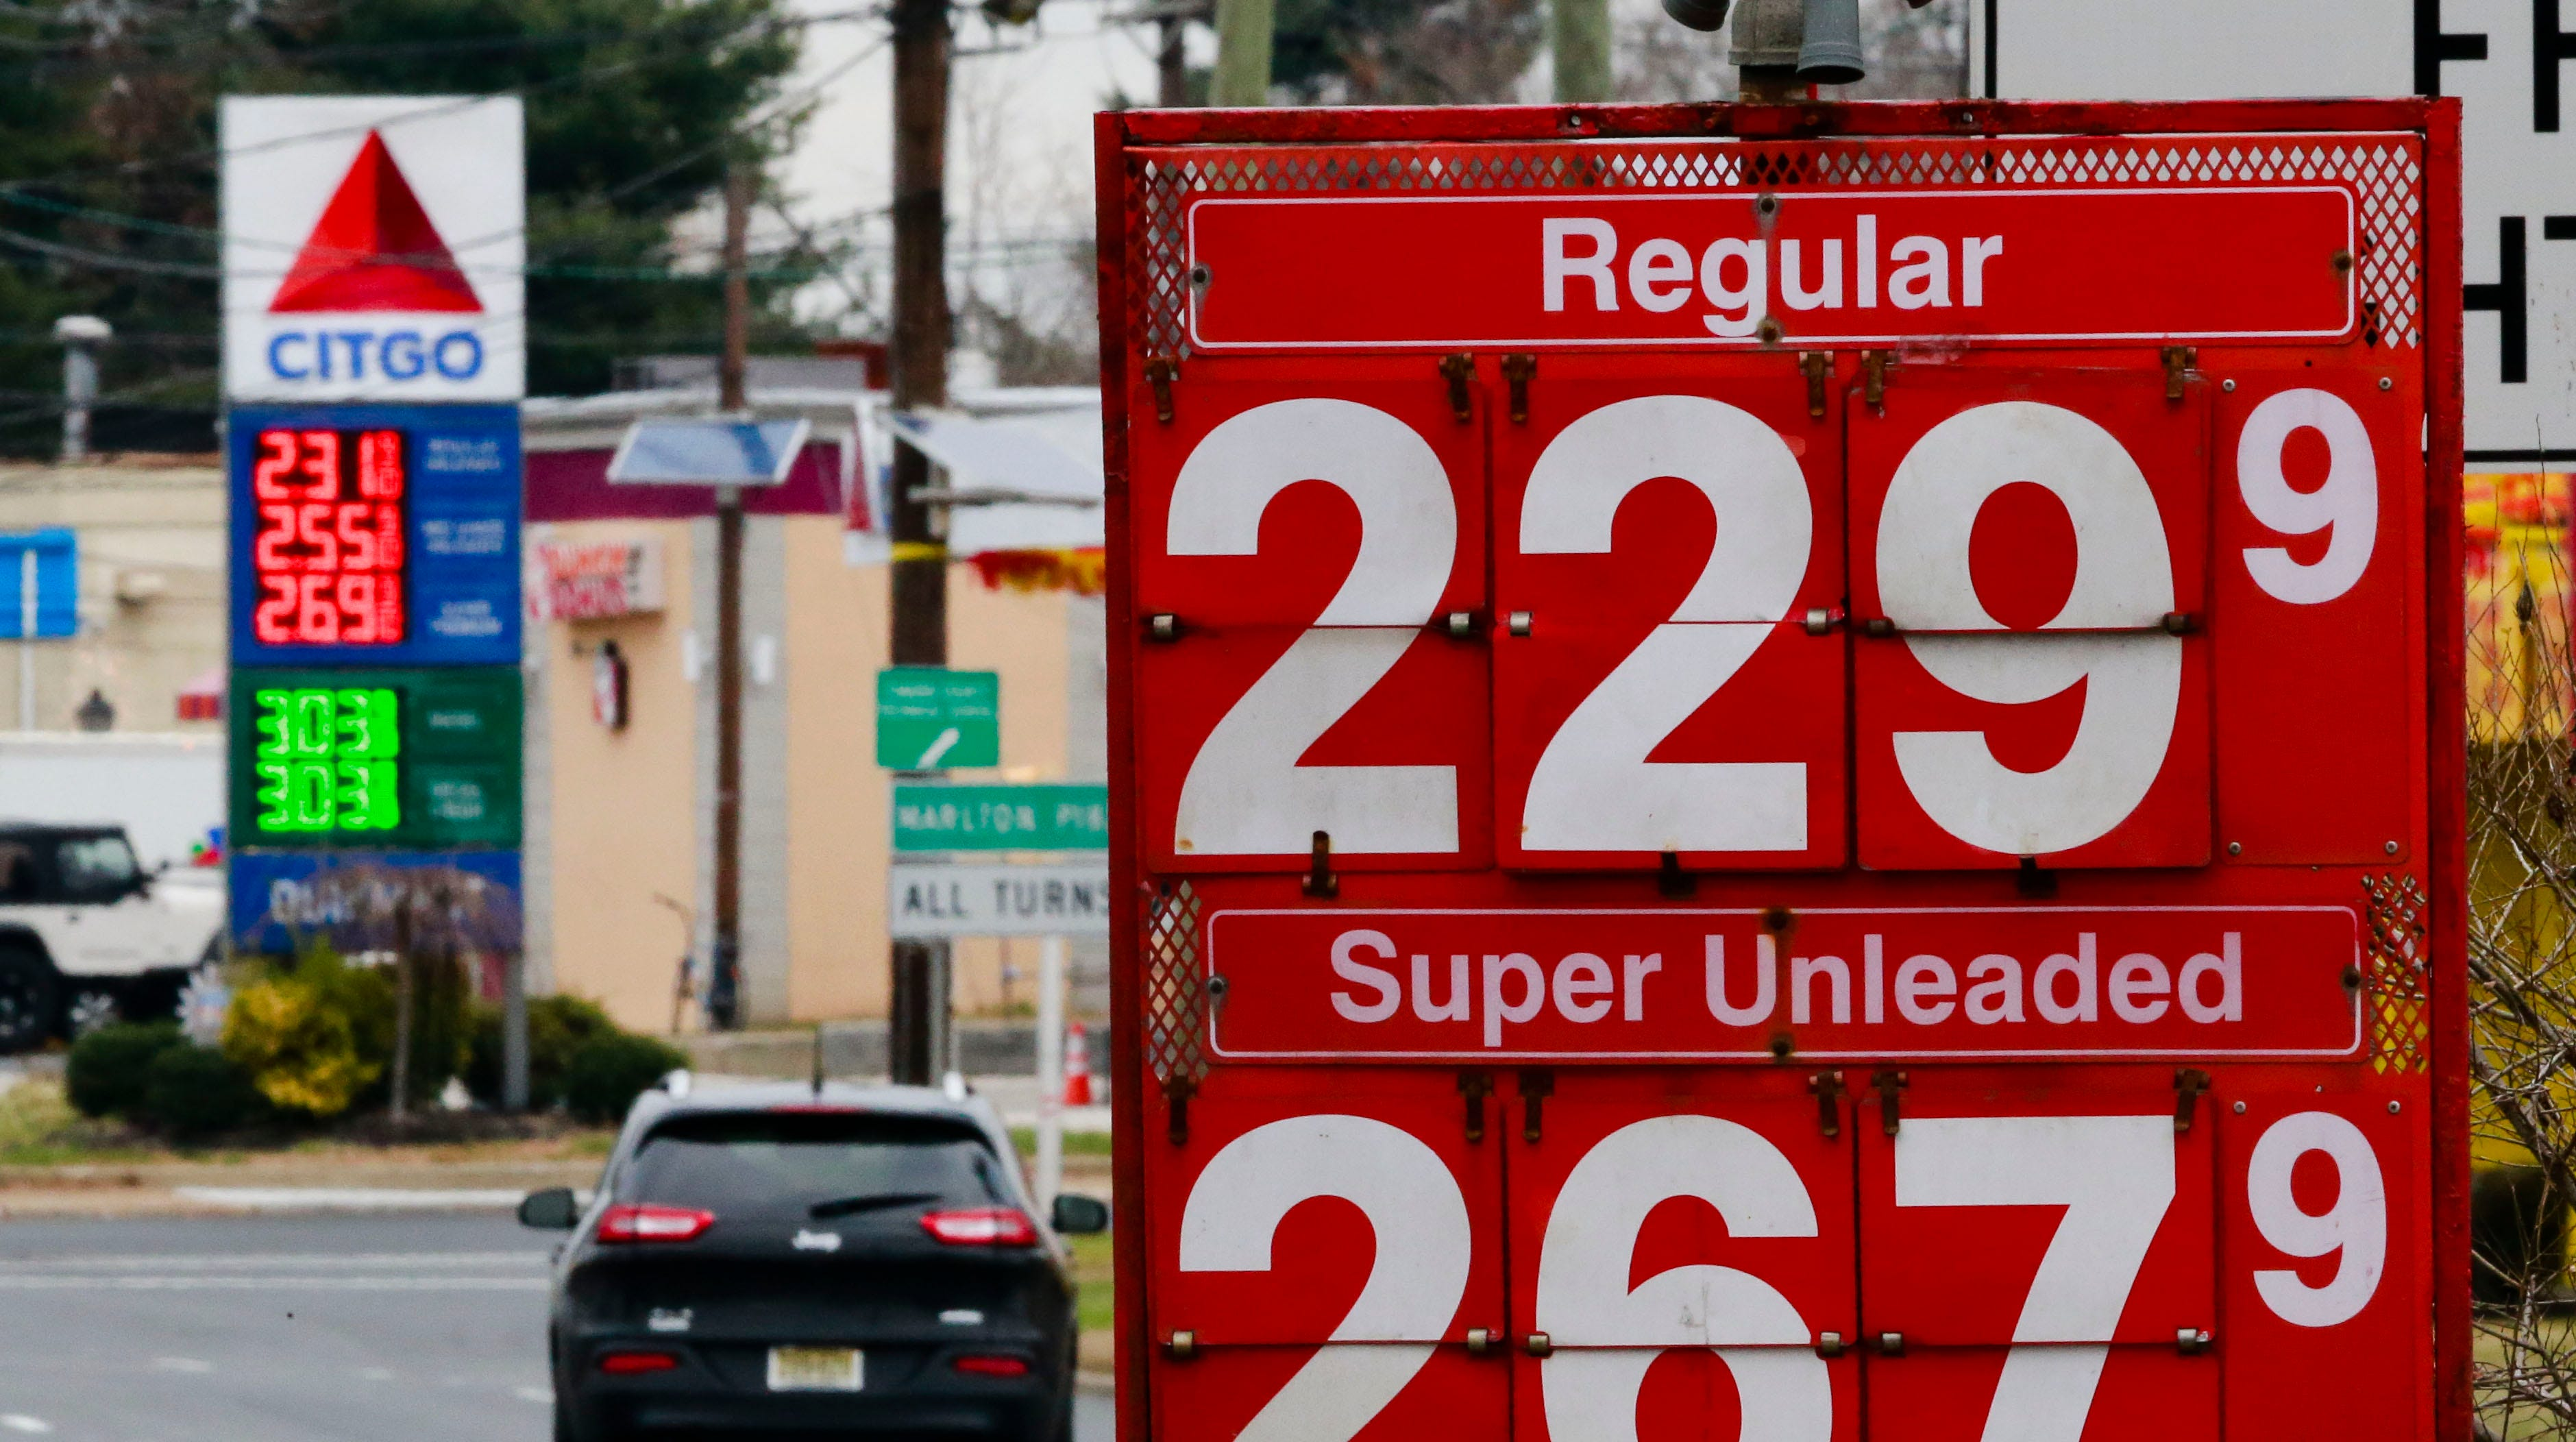 Savvy travelers have tricks to find the lowest gas prices when they travel, but caution that going too far out of your way can be counterproductive.